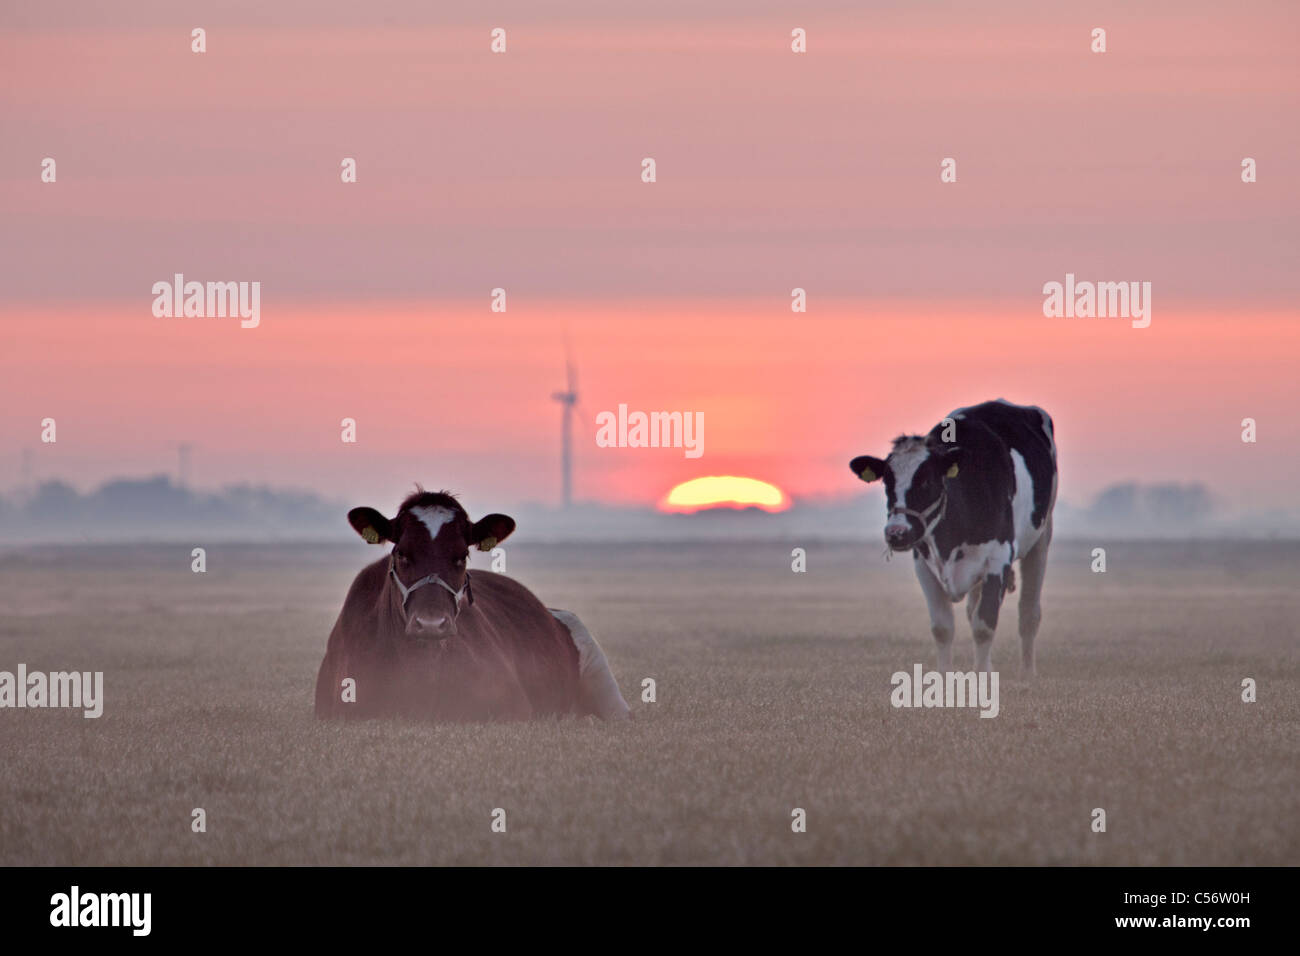 The Netherlands, Callantsoog, cows in morning mist at sunrise. - Stock Image